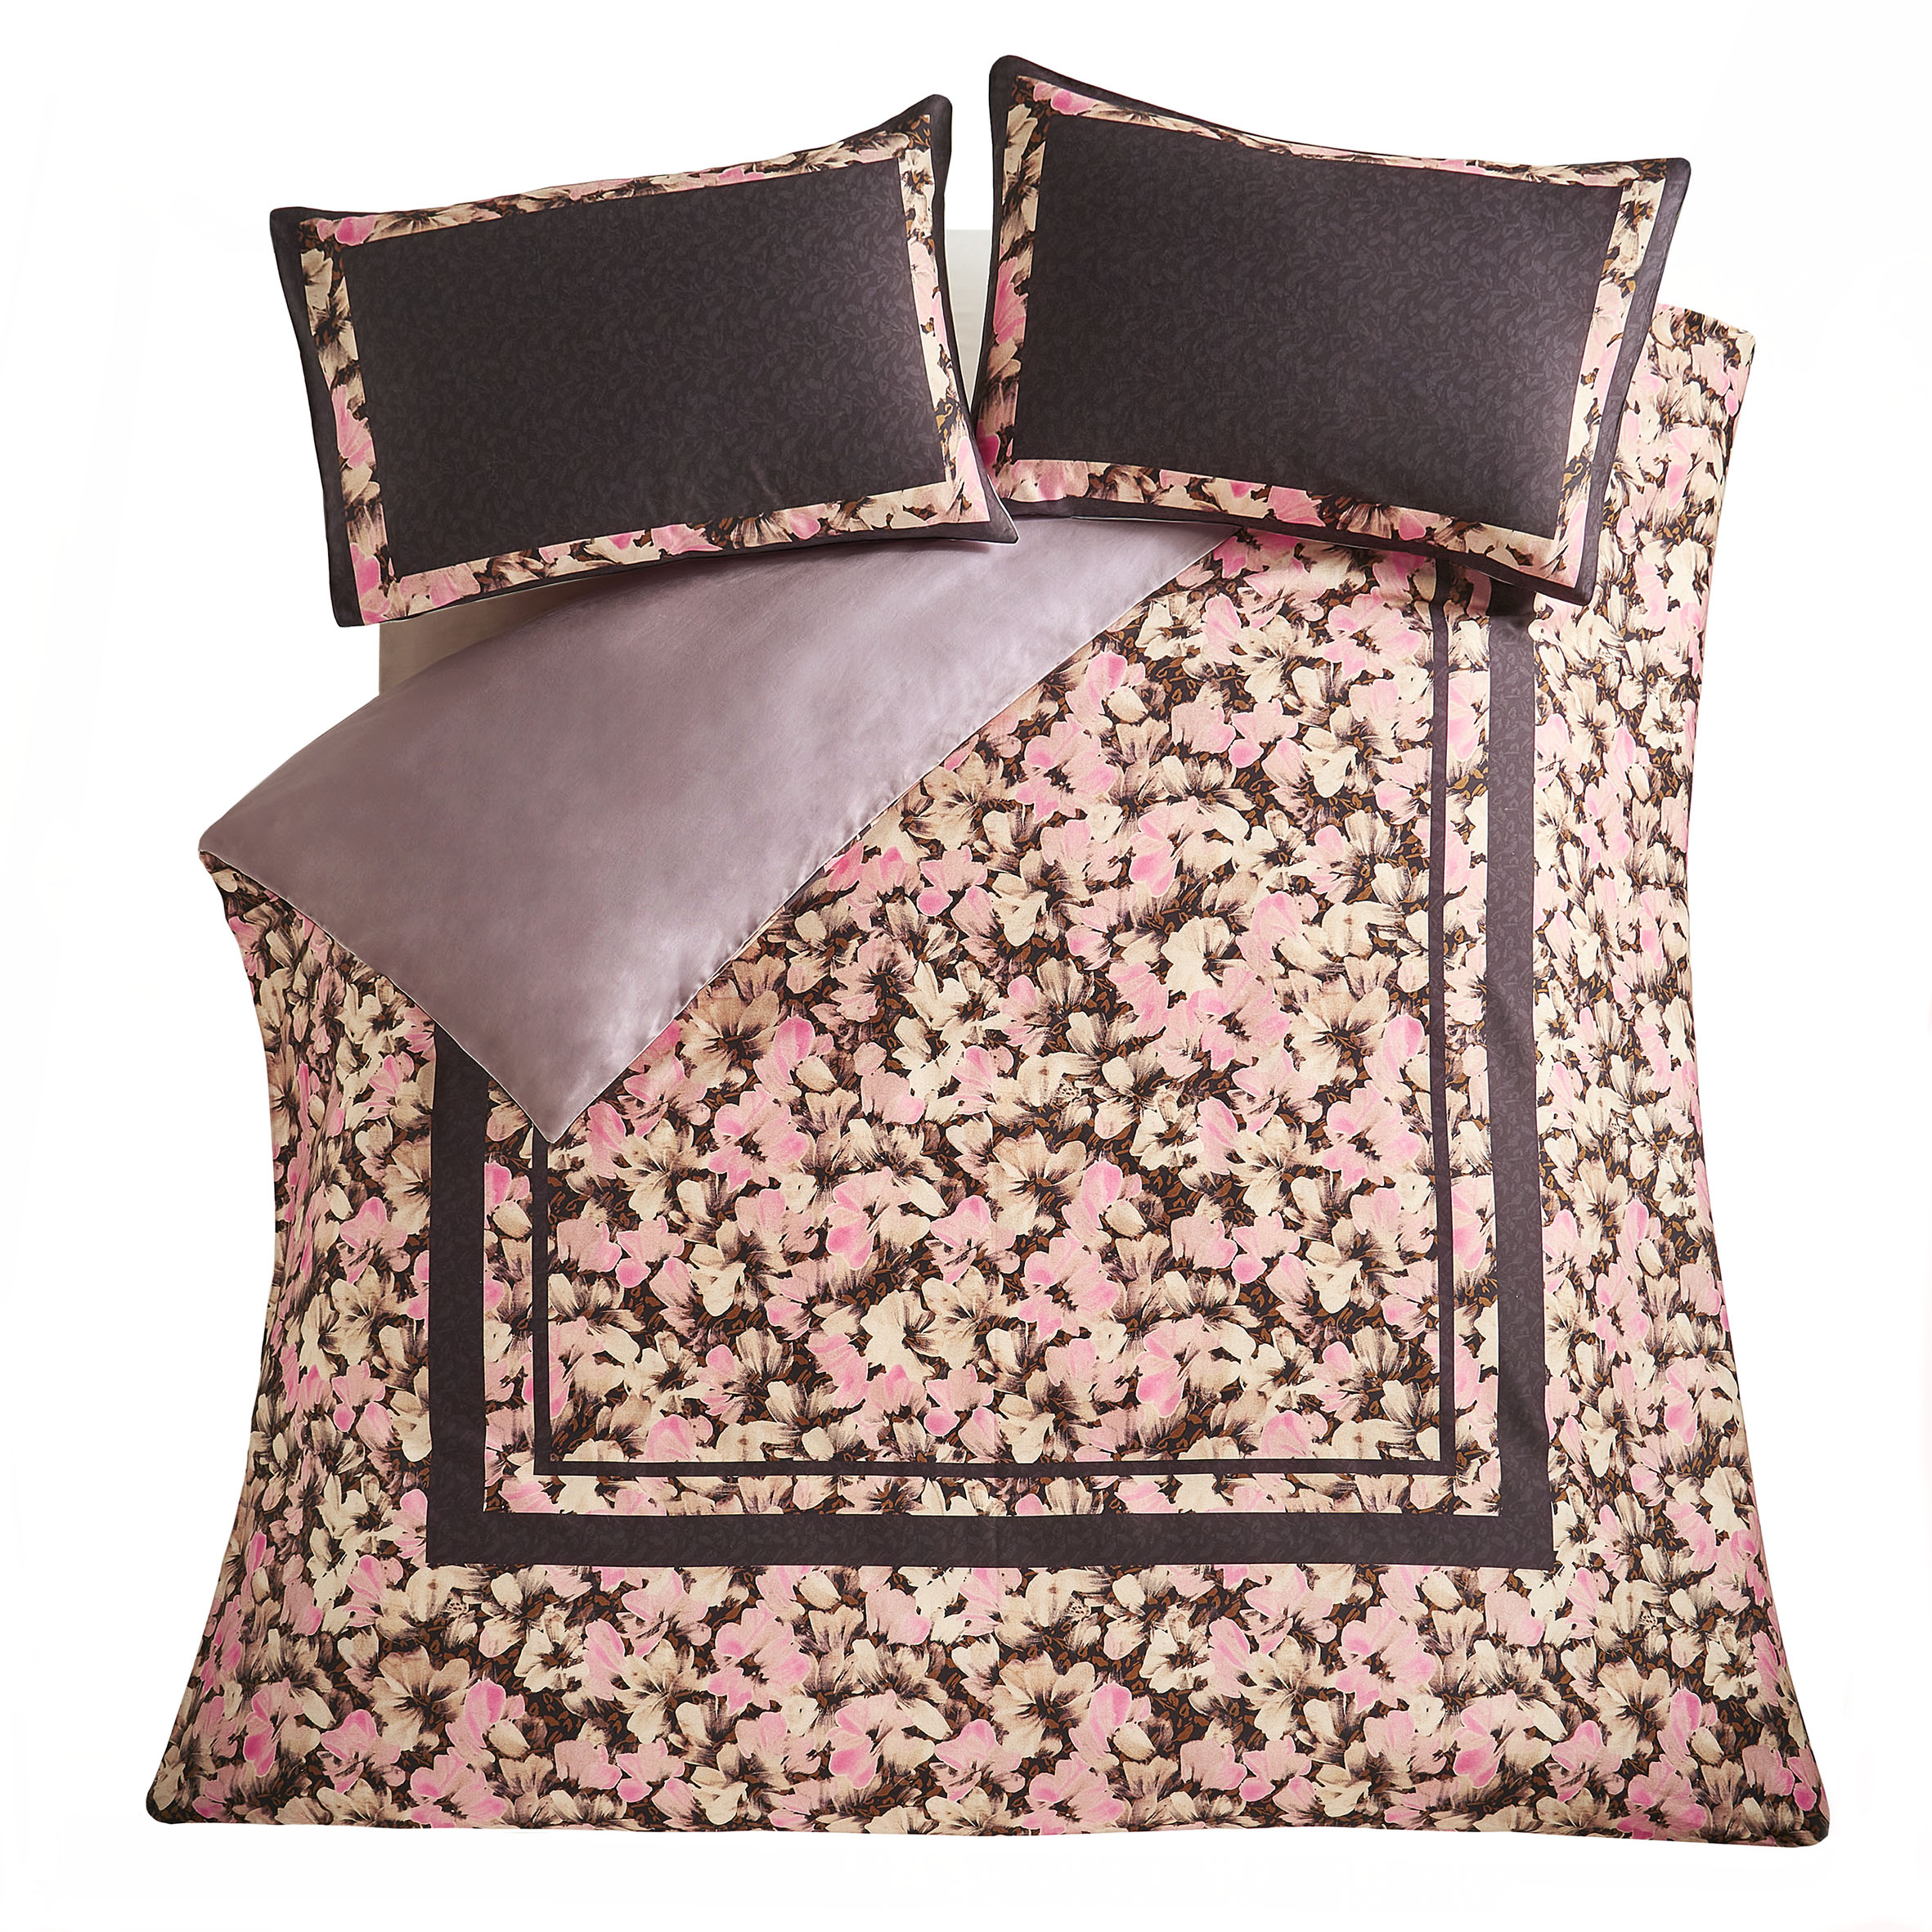 SMUDGE FLORAL DUVET COVER SUPERKING -COSMO